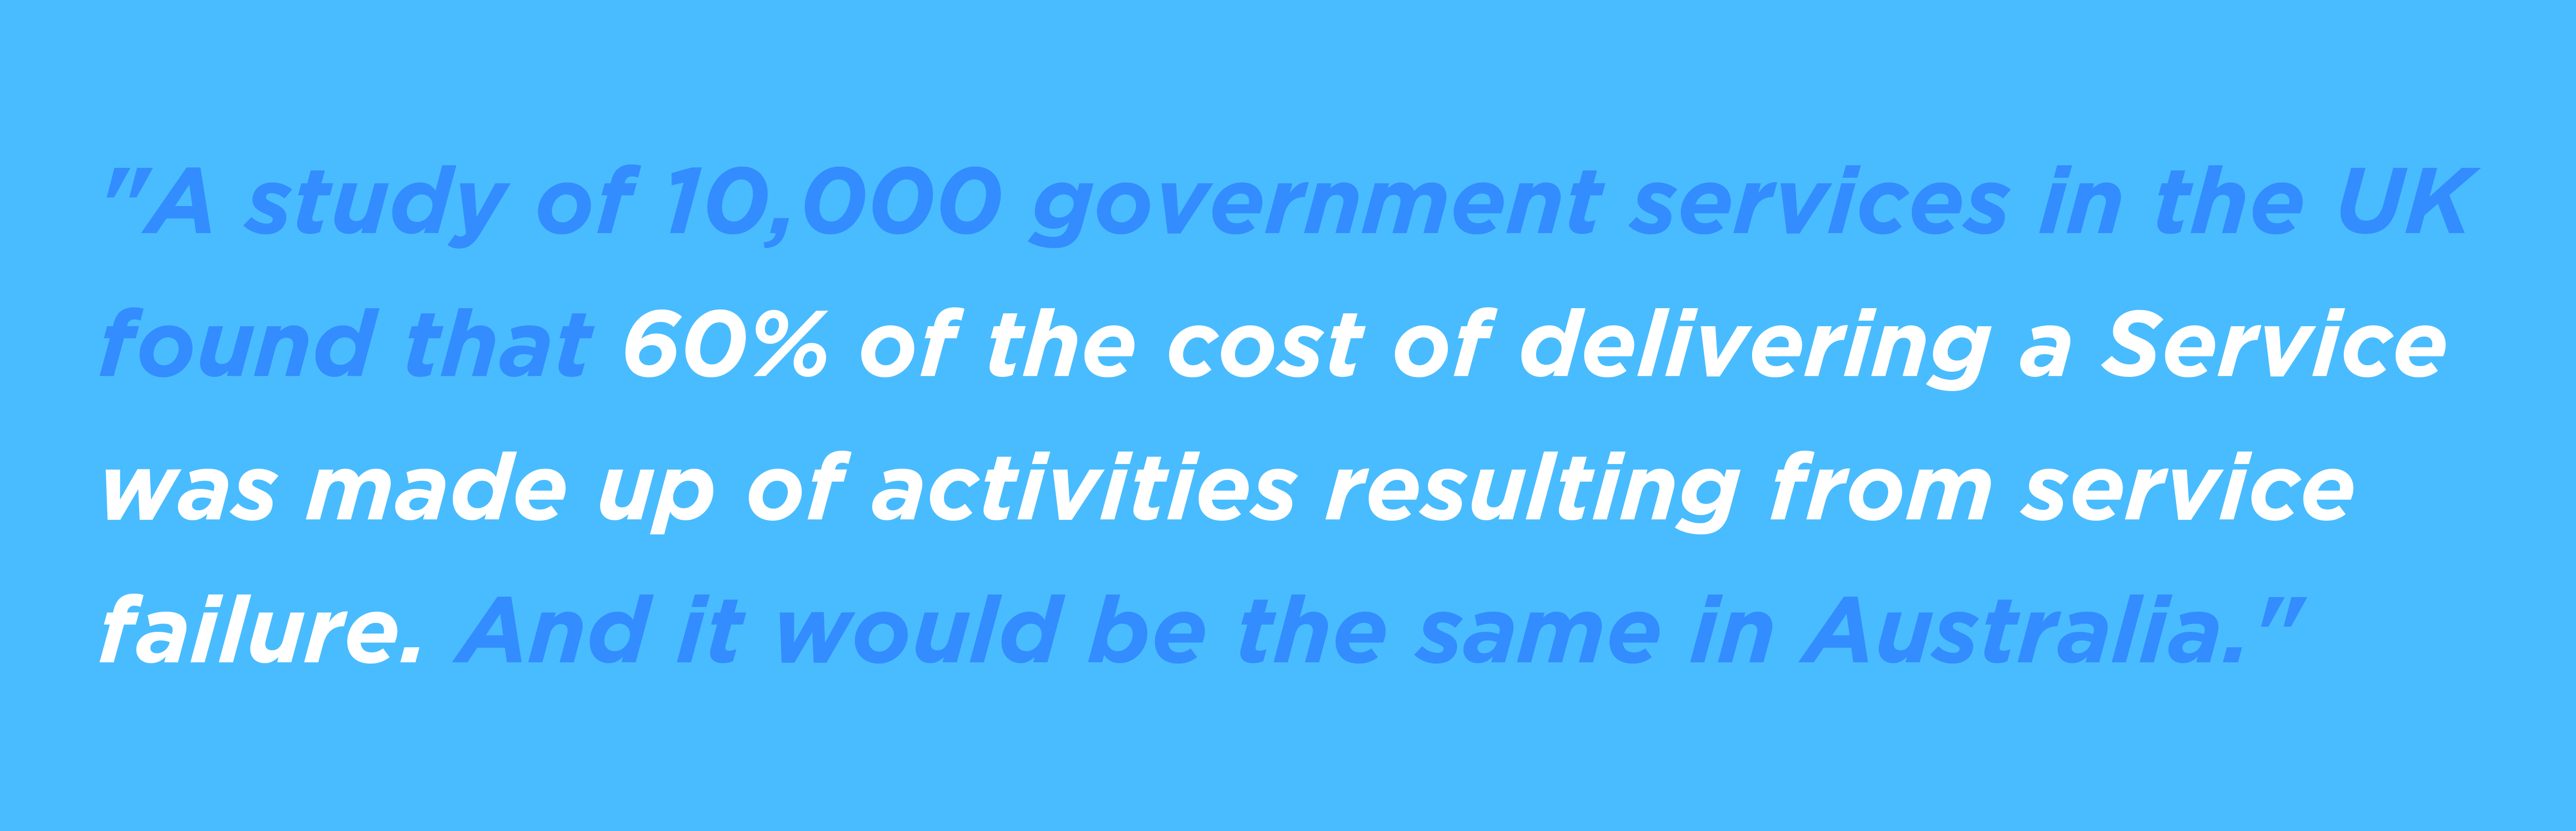 60% of the cost of delivering a Service was made up of activities resulting from service failure.